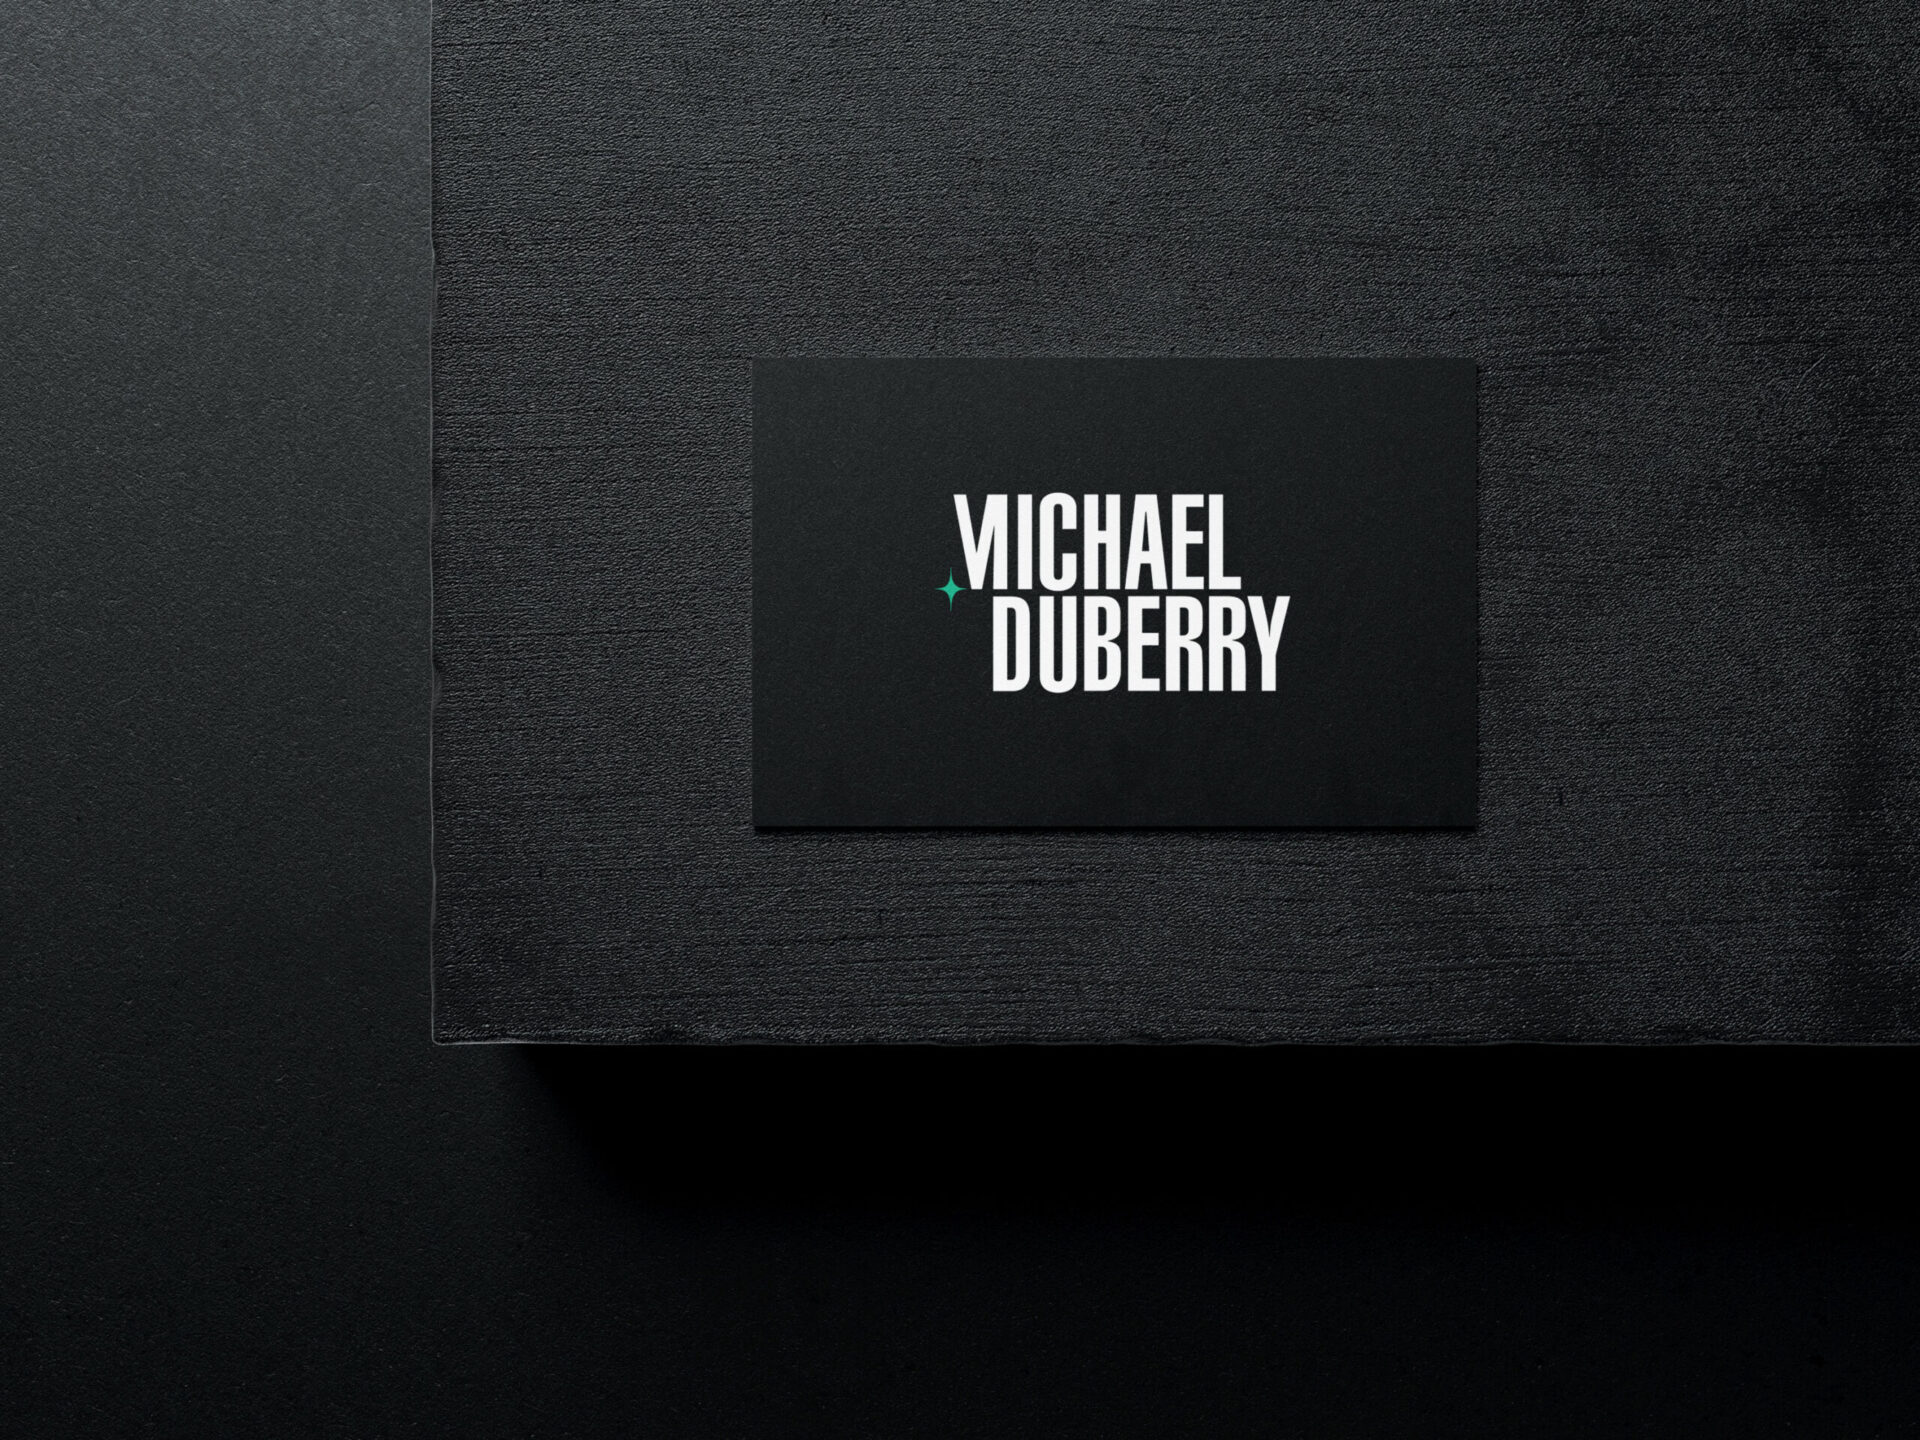 Michael Duberry – Business Card